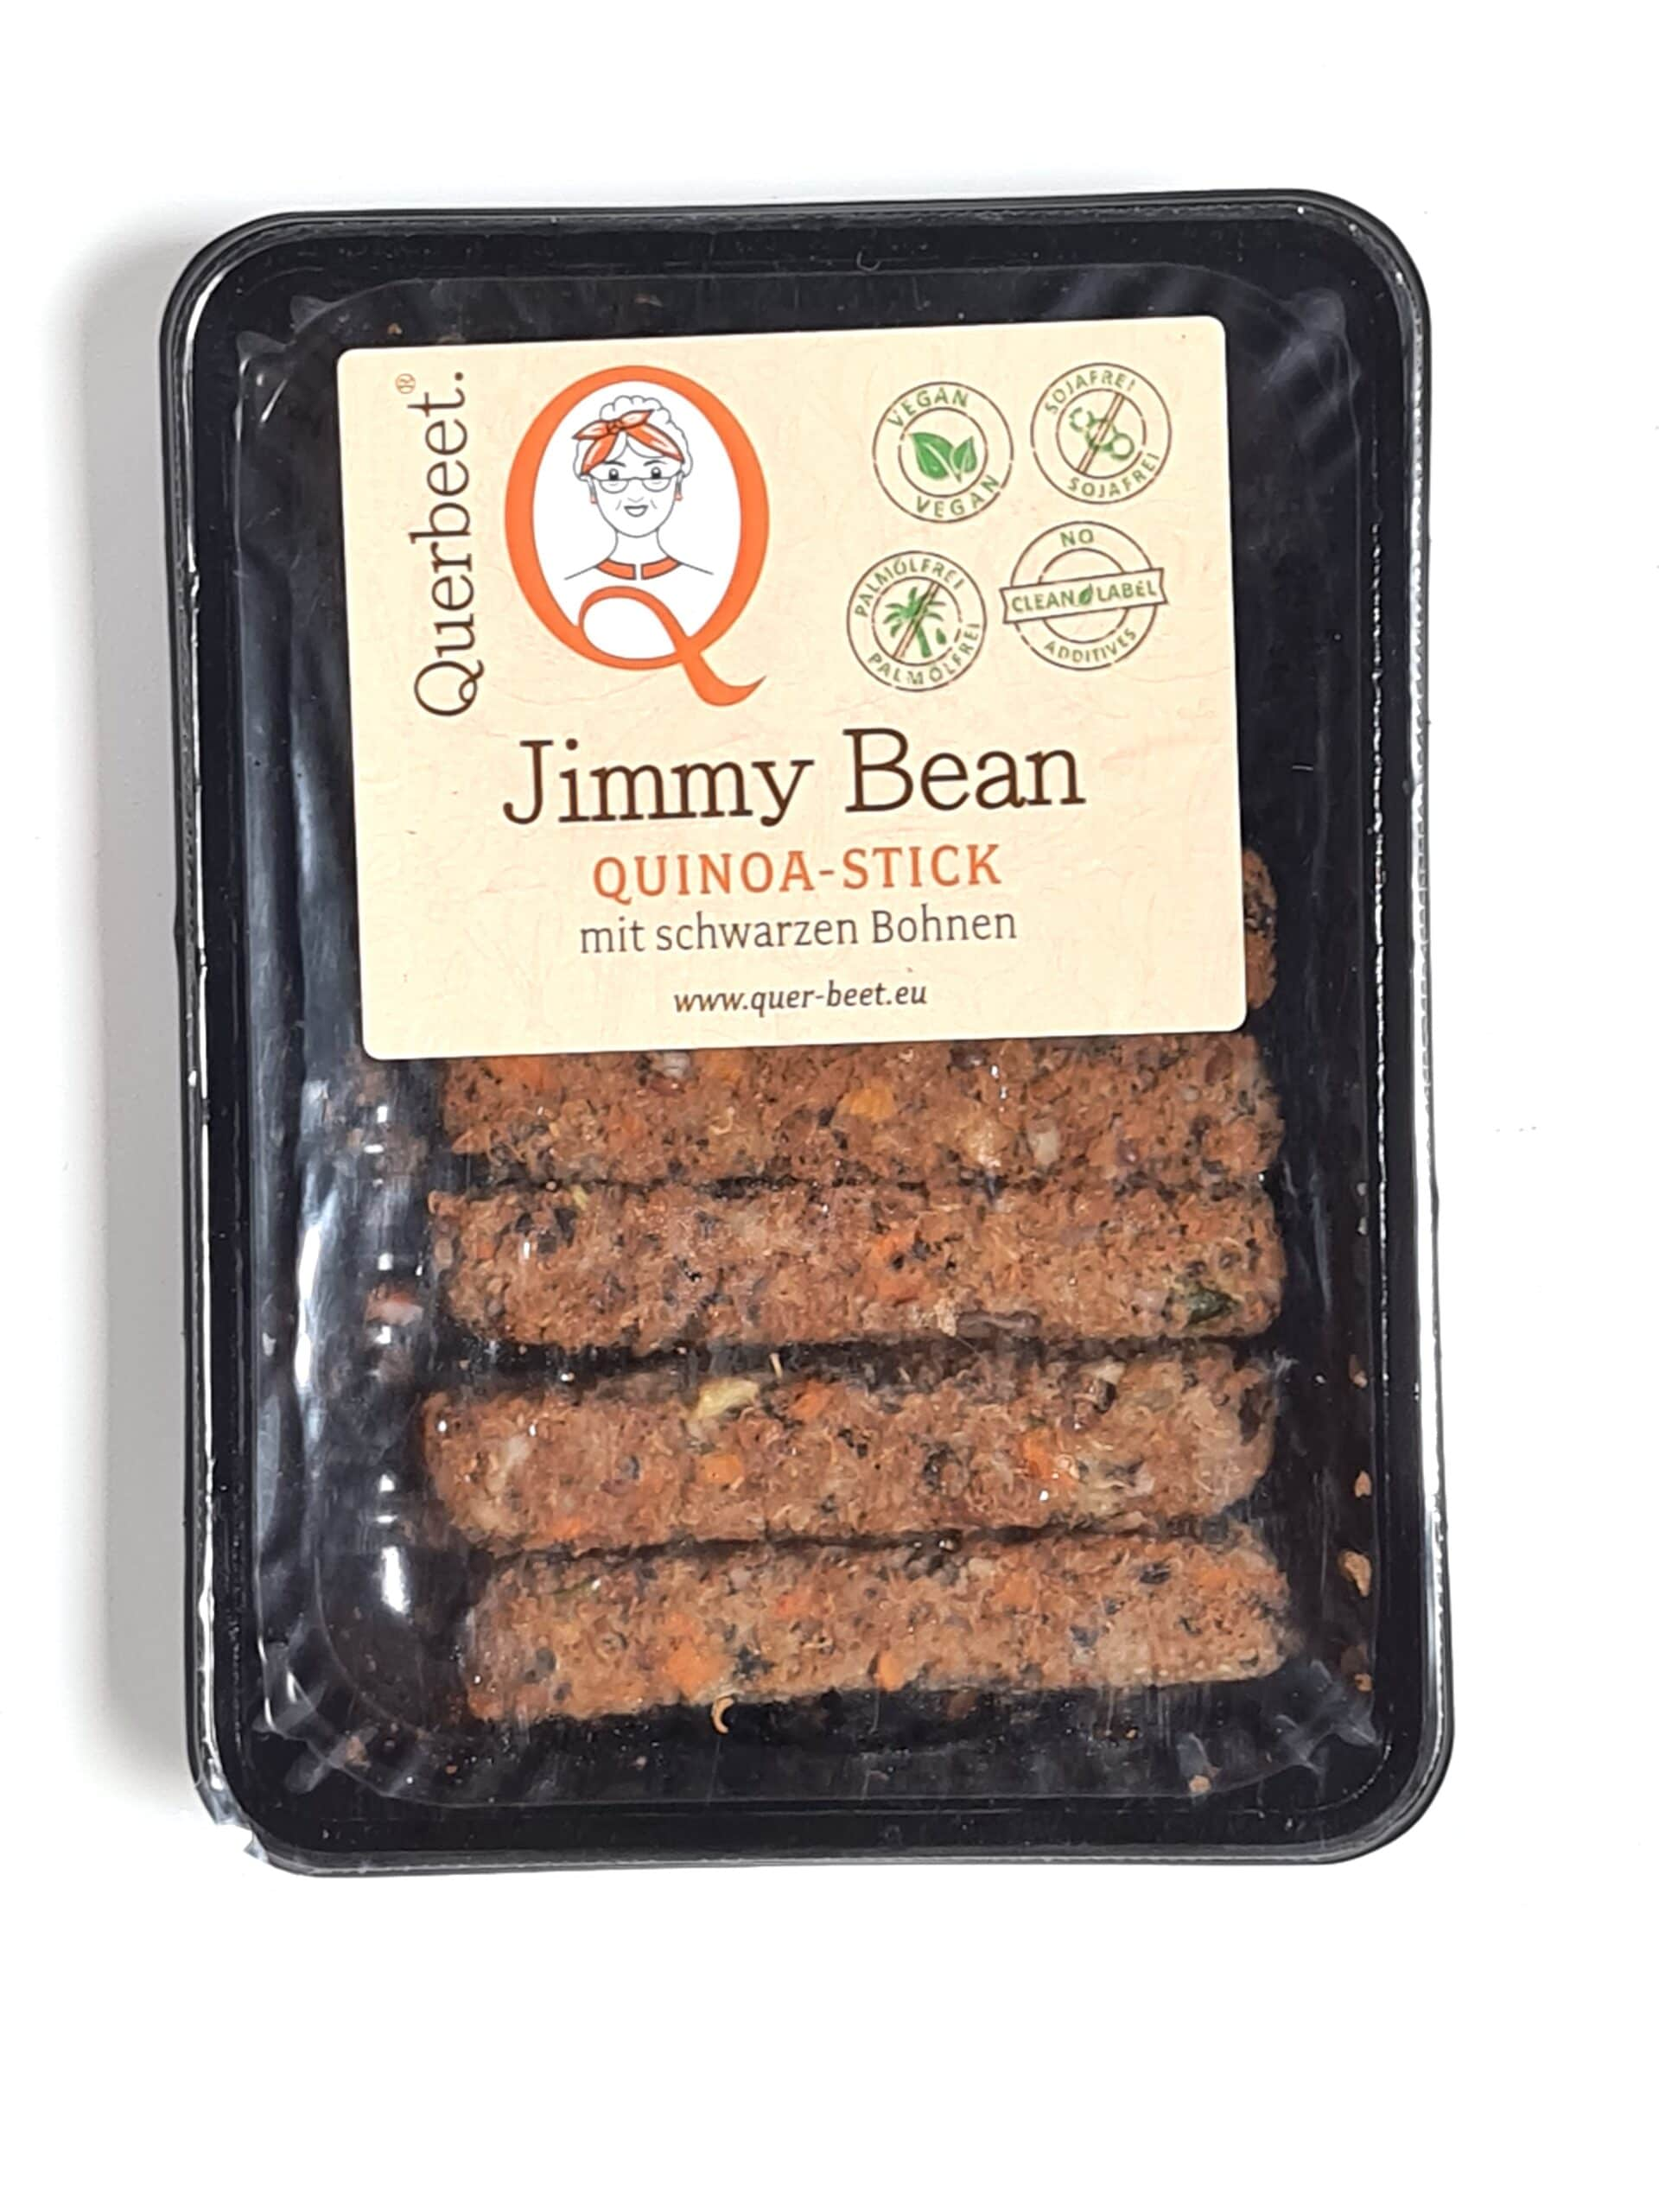 Jimmy bean